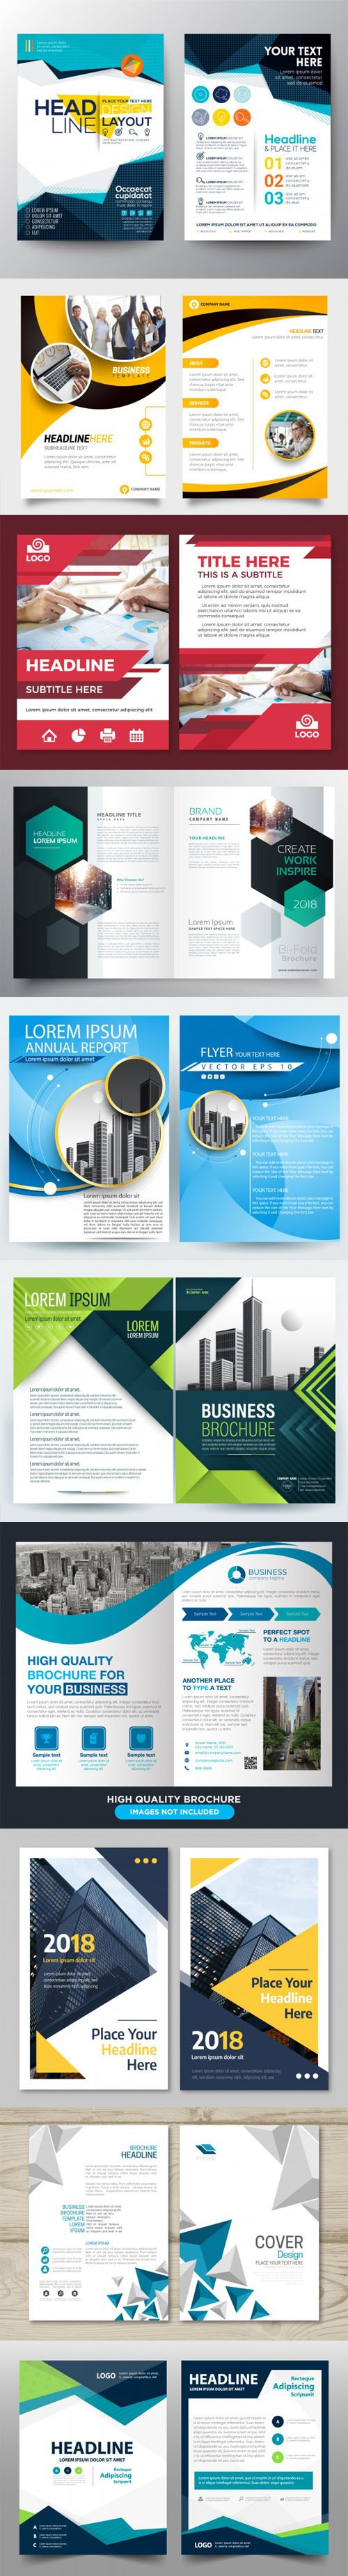 10 Modern and Professional Flyers/Brochures Templates in Vector